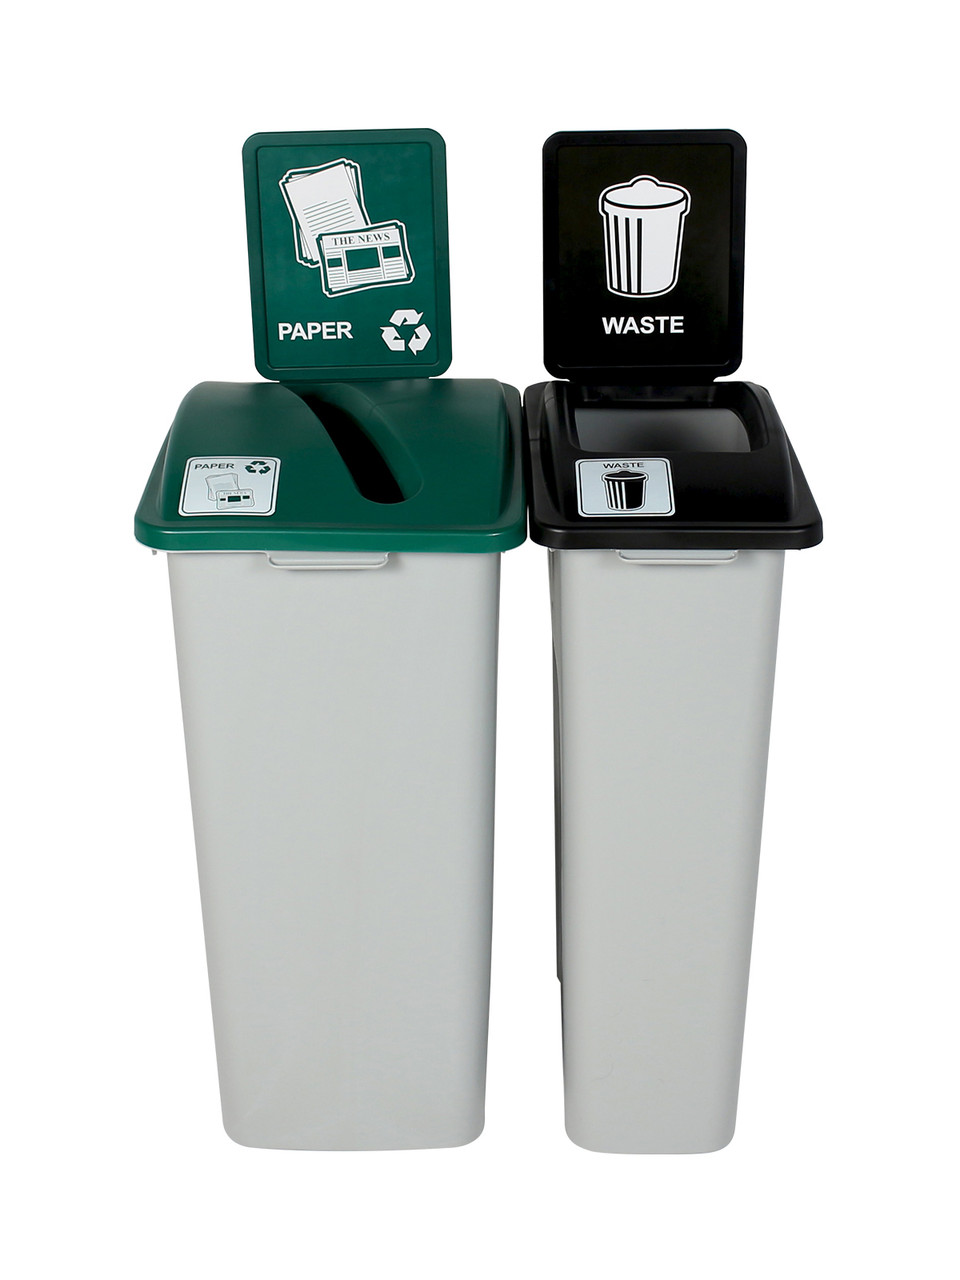 55 Gallon Simple Sort Trash Can Recycle Bin Combo 8111040-34 (Slot, Waste Openings)